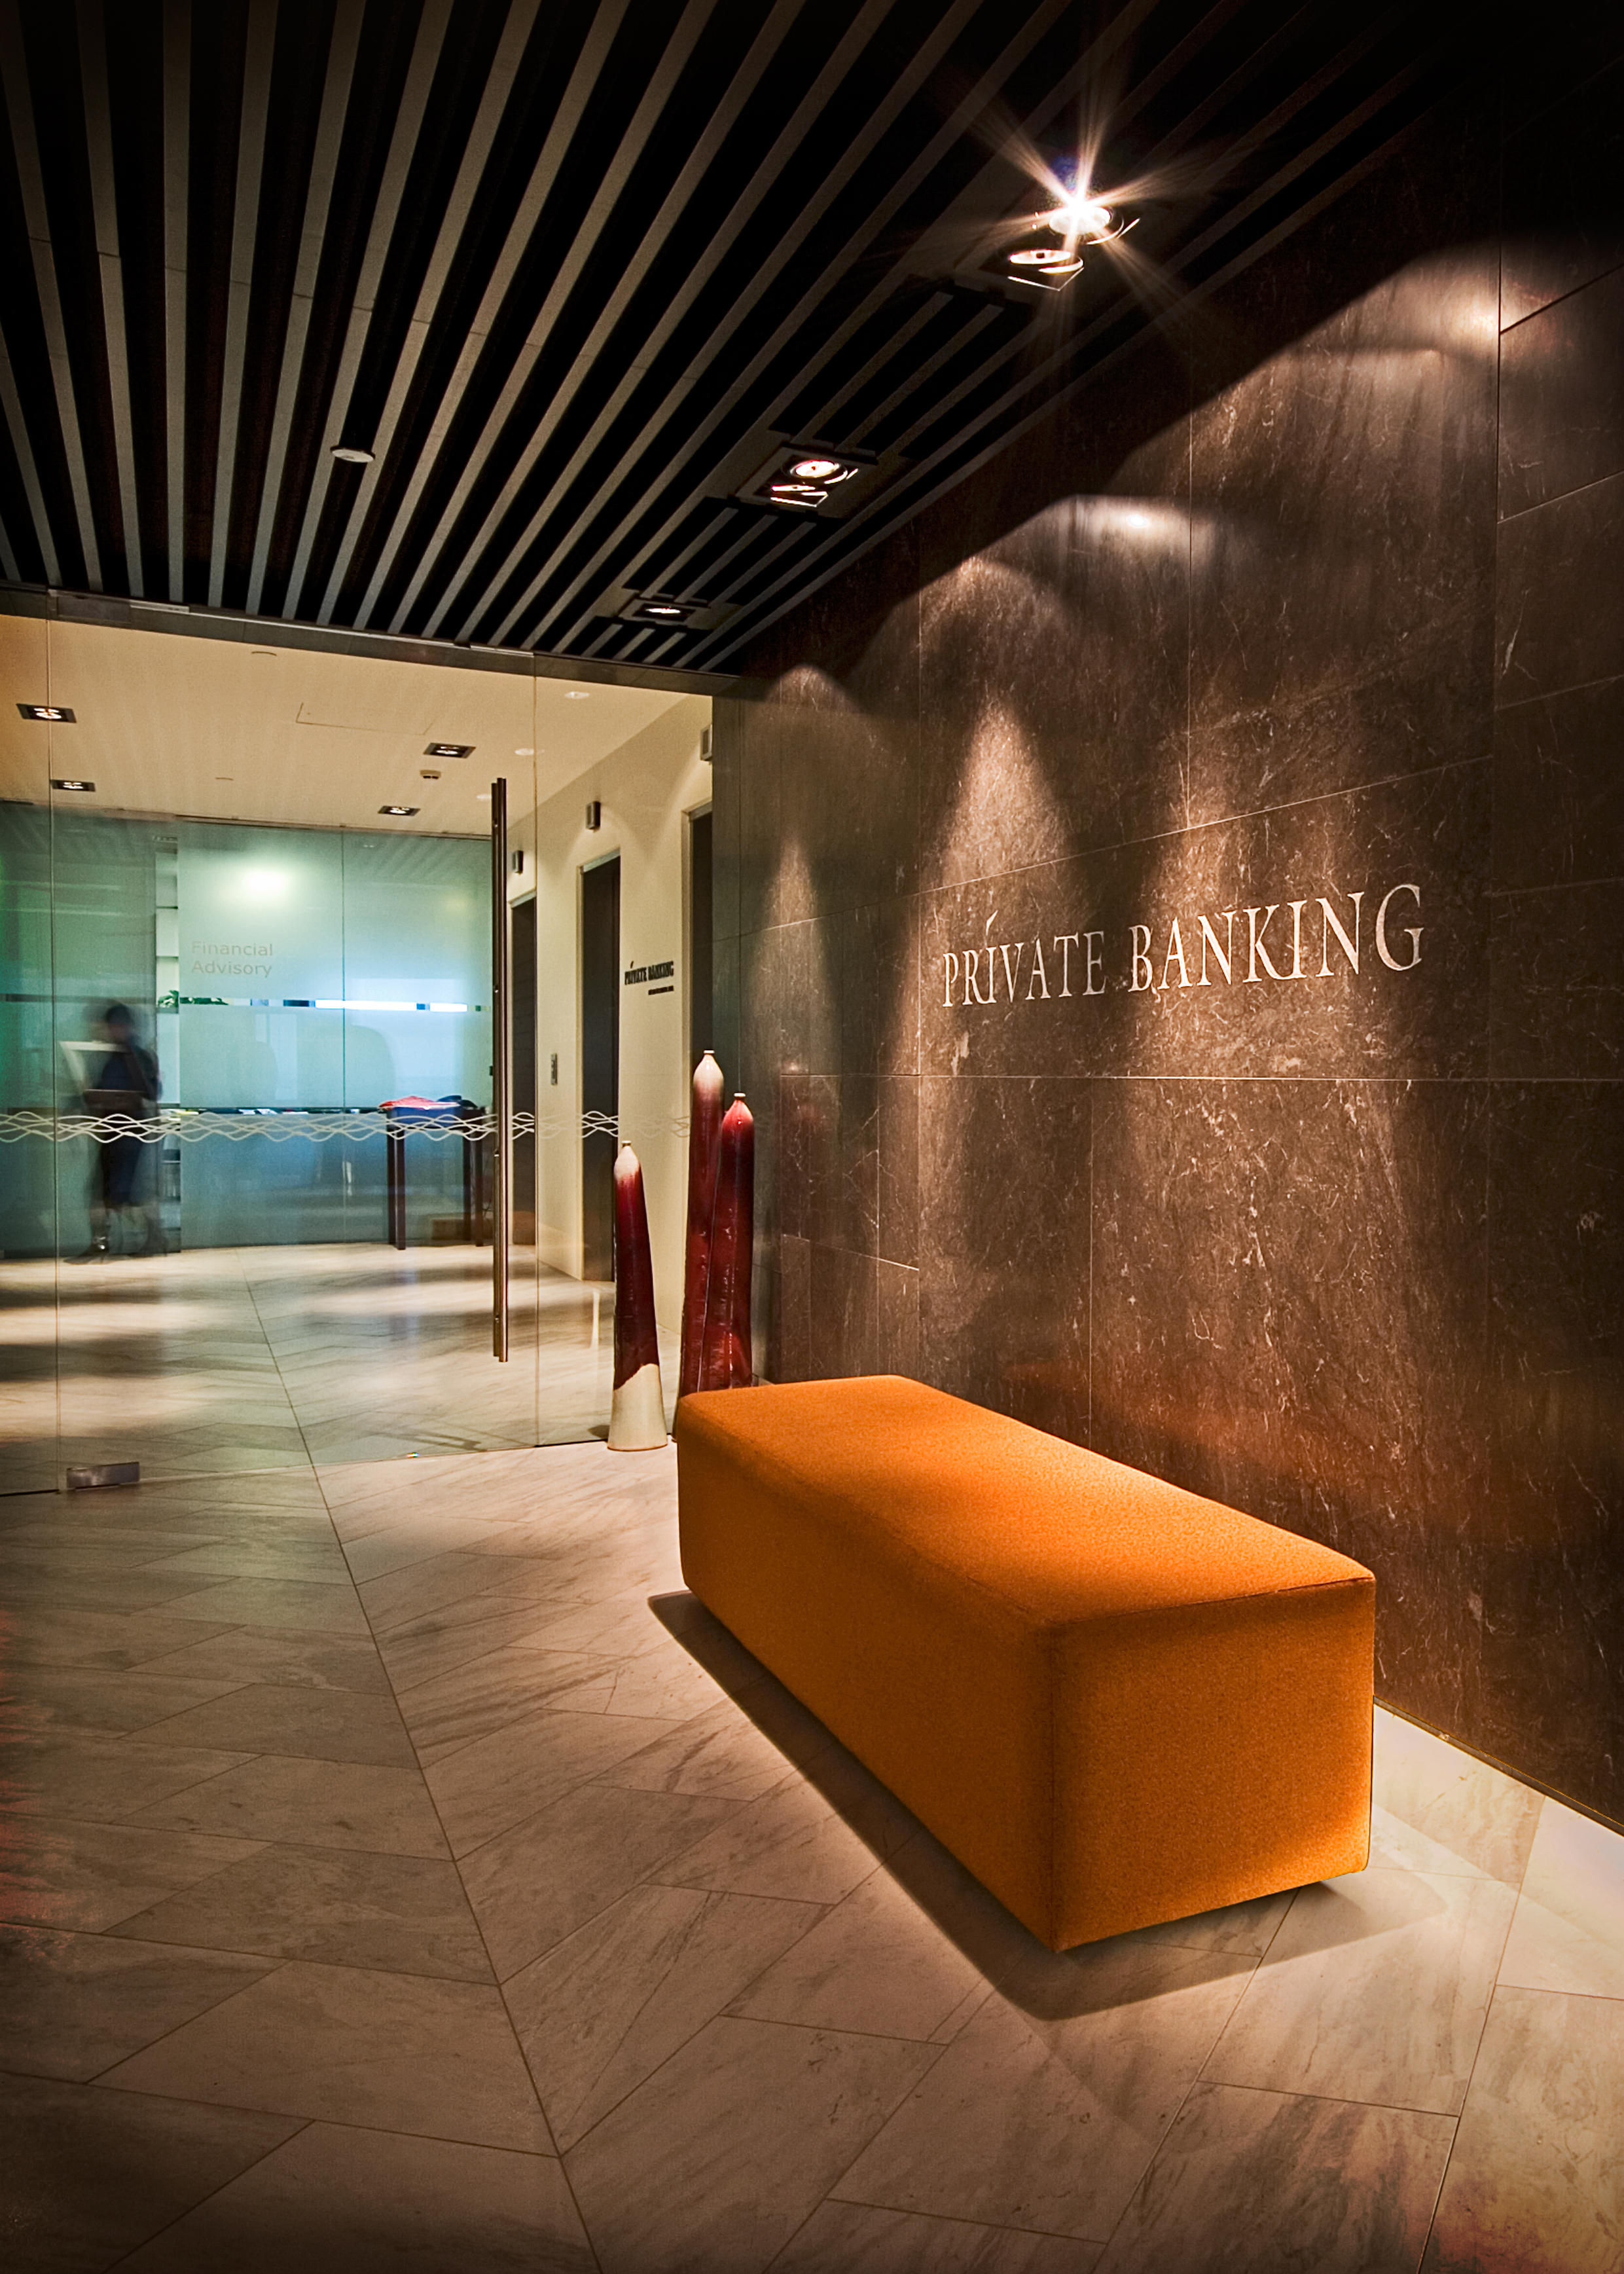 Private Banking_Lobby_1 of 6.jpg